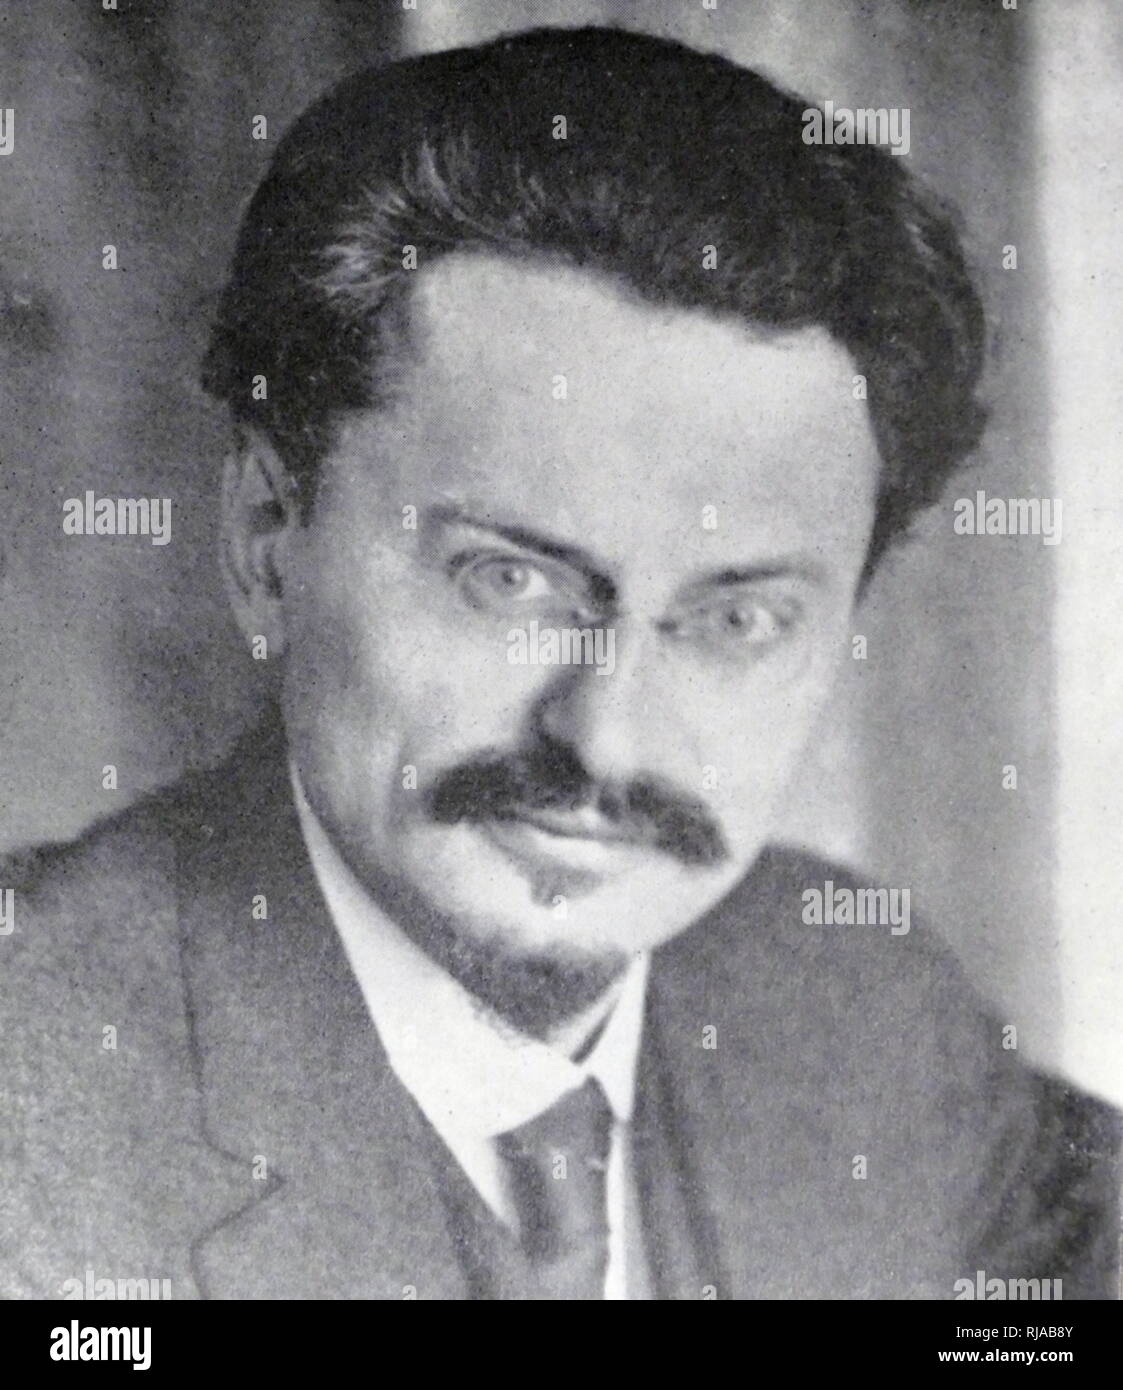 Leon Trotsky (1879 – 1940); Marxist revolutionary, theorist, and Soviet politician. Initially supporting the Menshevik Internationalists faction within the Russian Social Democratic Labour Party, he joined the Bolsheviks ('majority') just before the 1917 October Revolution, immediately becoming a leader within the Communist Party. He would go on to become one of the seven members of the first Politburo, founded in 1917 to manage the Bolshevik Revolution - Stock Image